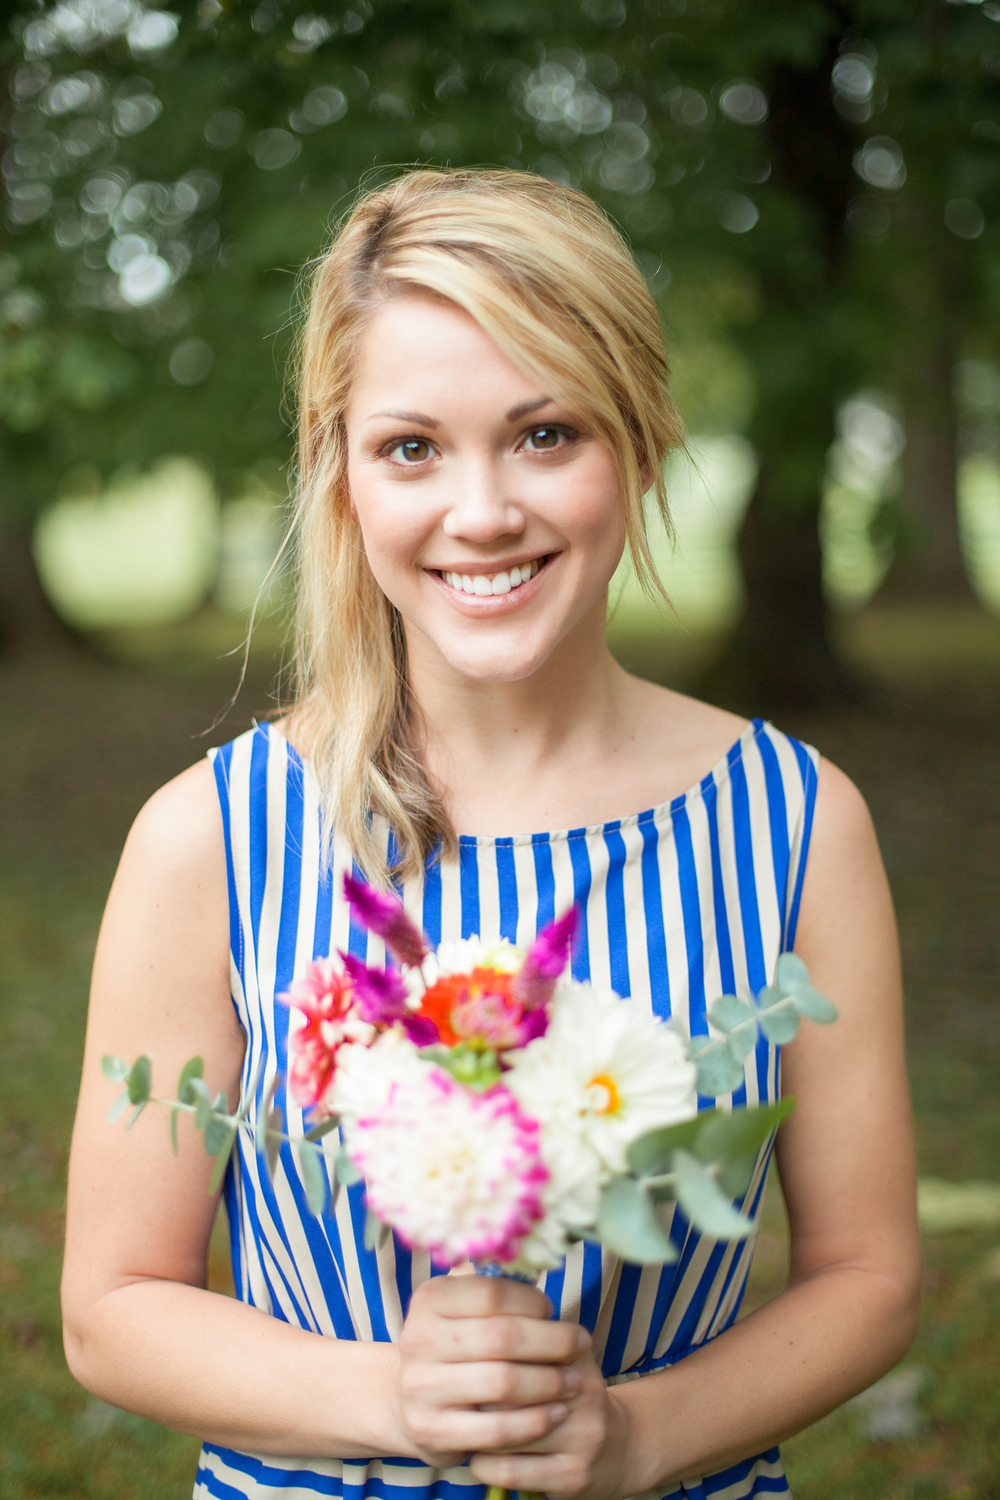 Gorgeous Blonde Bridesmaid in a Gown from LaMaLu Boutique